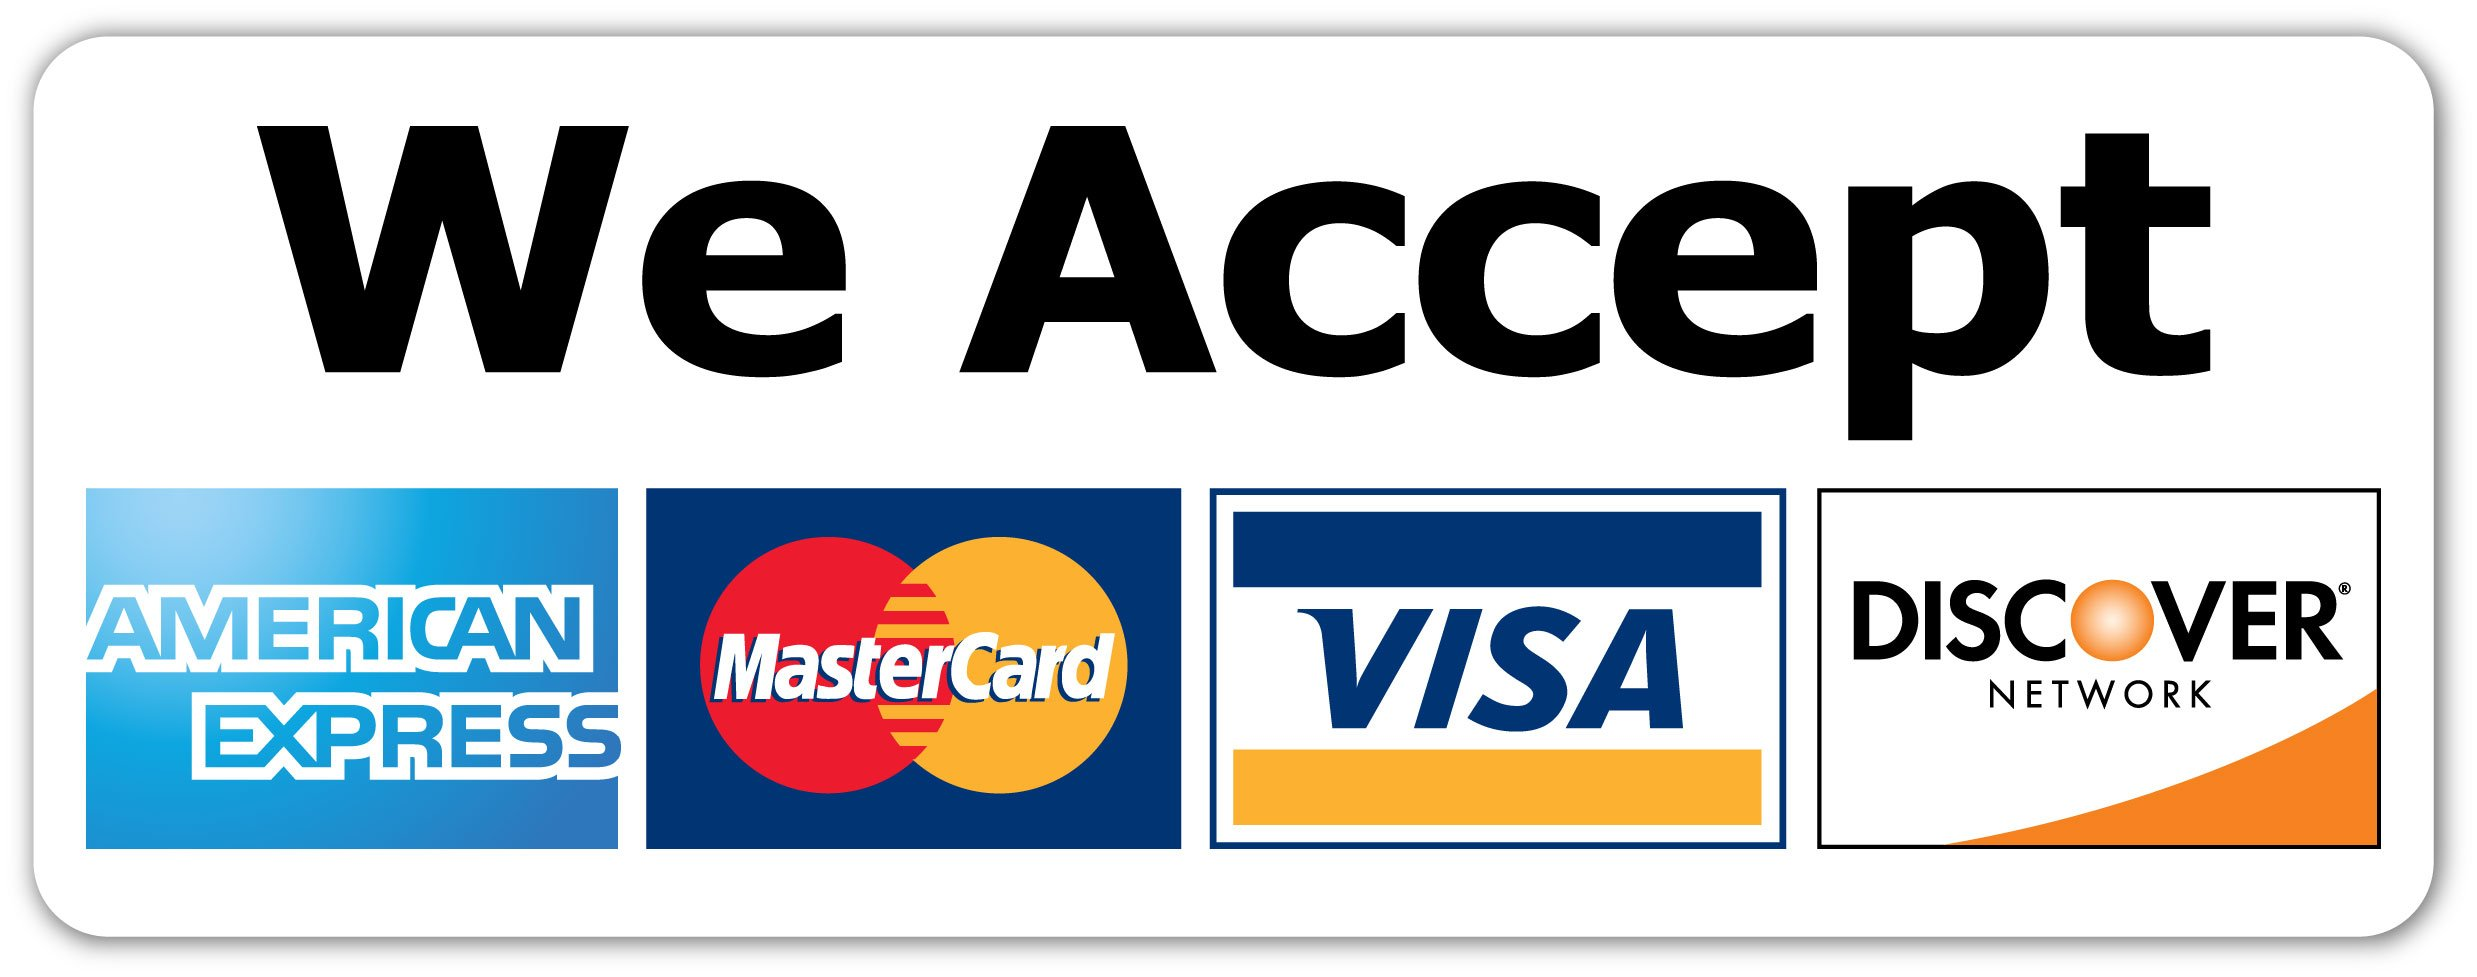 We Accept Major Credit Cards AmEx MasterCard Visa Discover Sticker  Store  Window, Door, Payments Decal 13x13